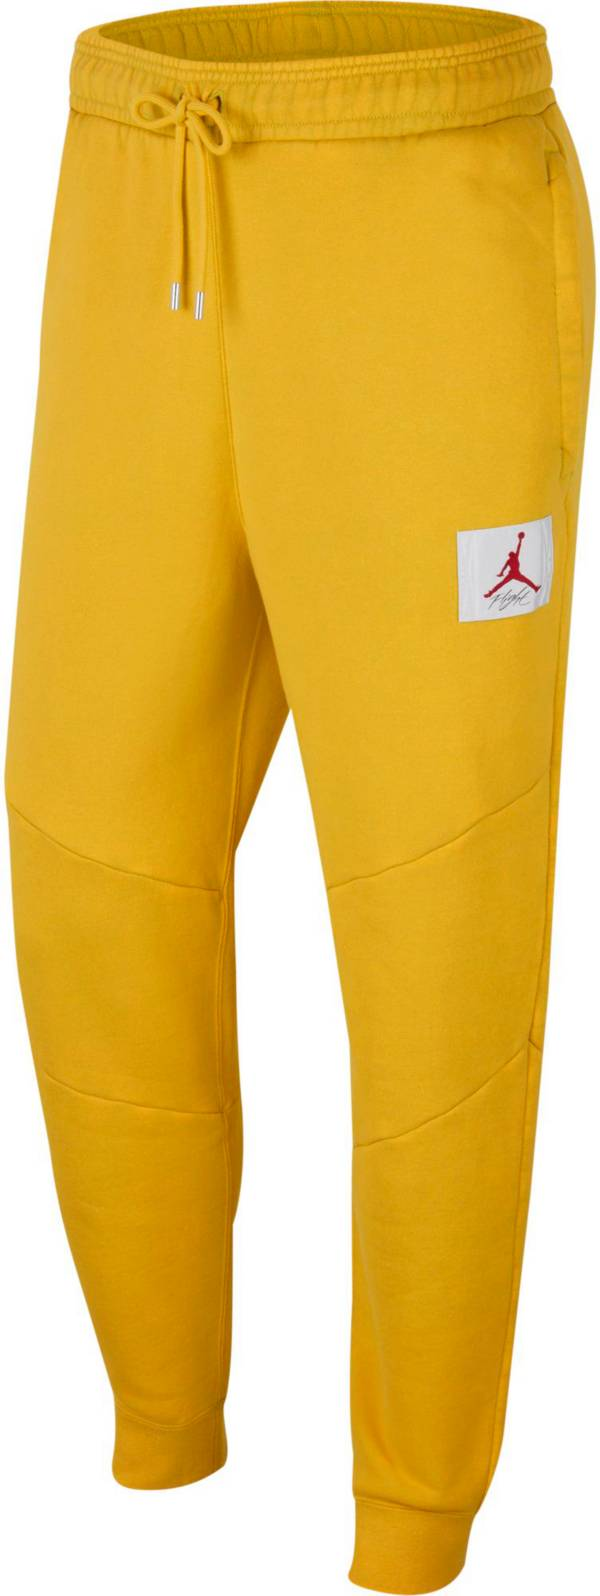 Jordan Men's Flight Fleece Pants product image